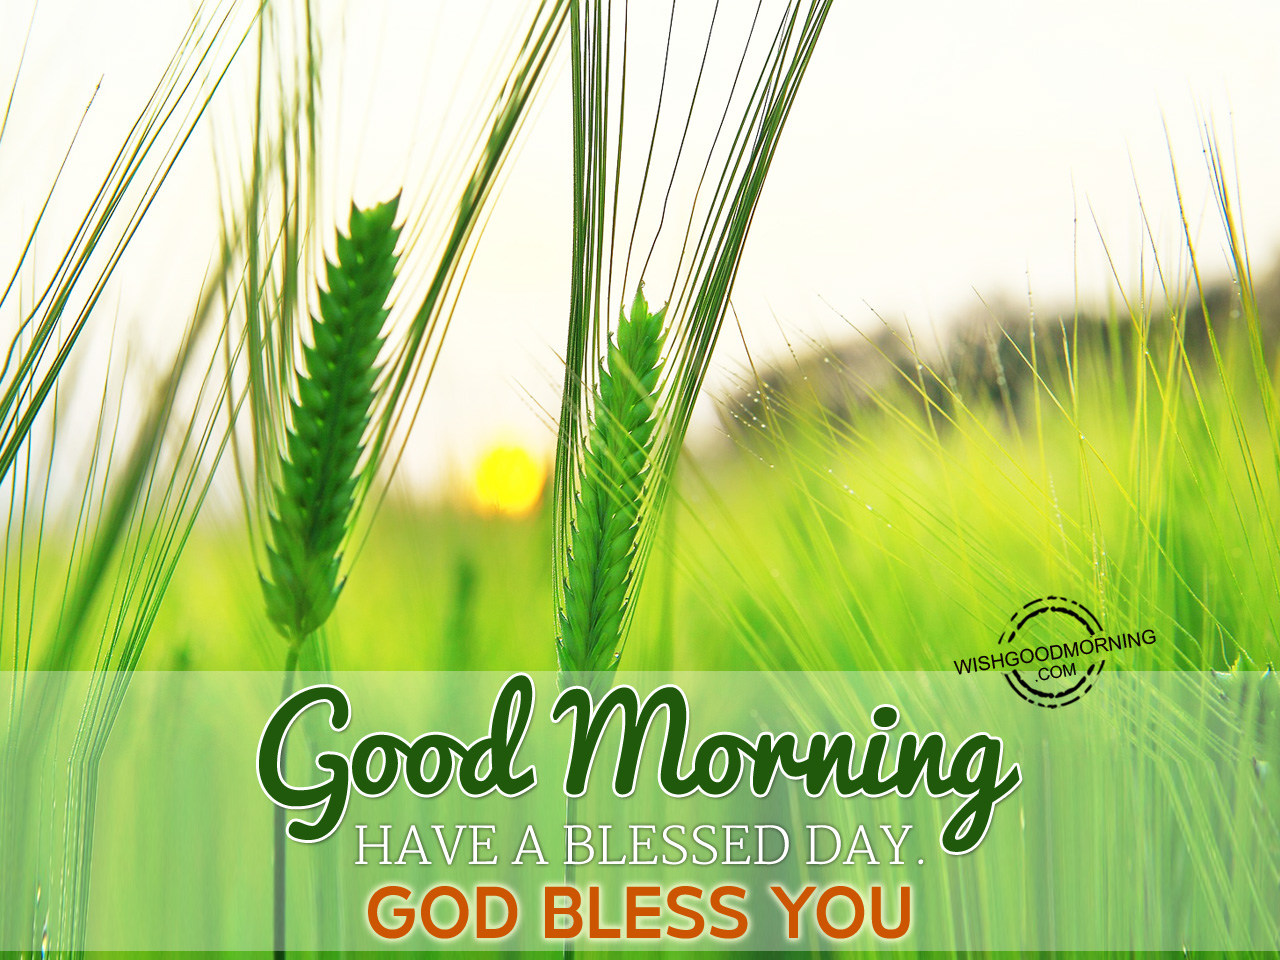 Good Morning Have A Blessed Day God Bless You Good Morning